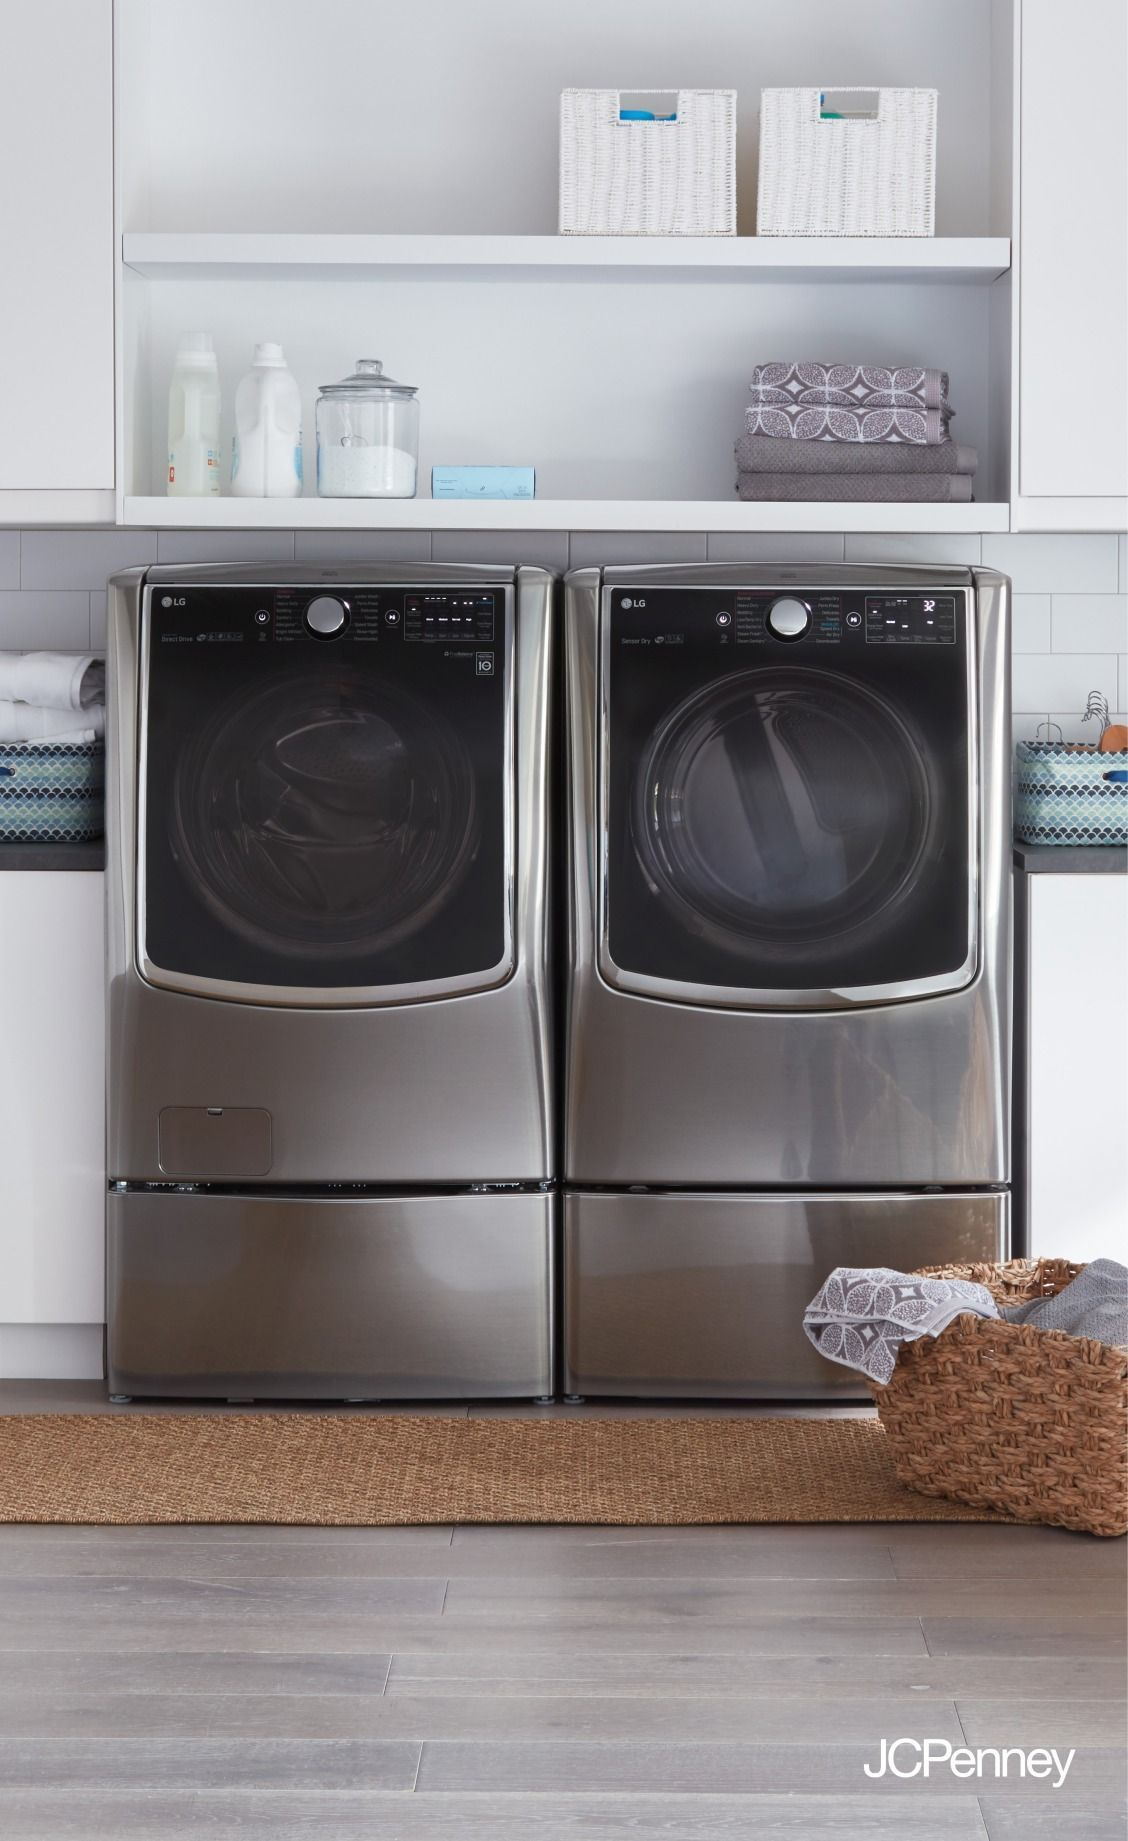 Lighten your laundry load by upgrading your